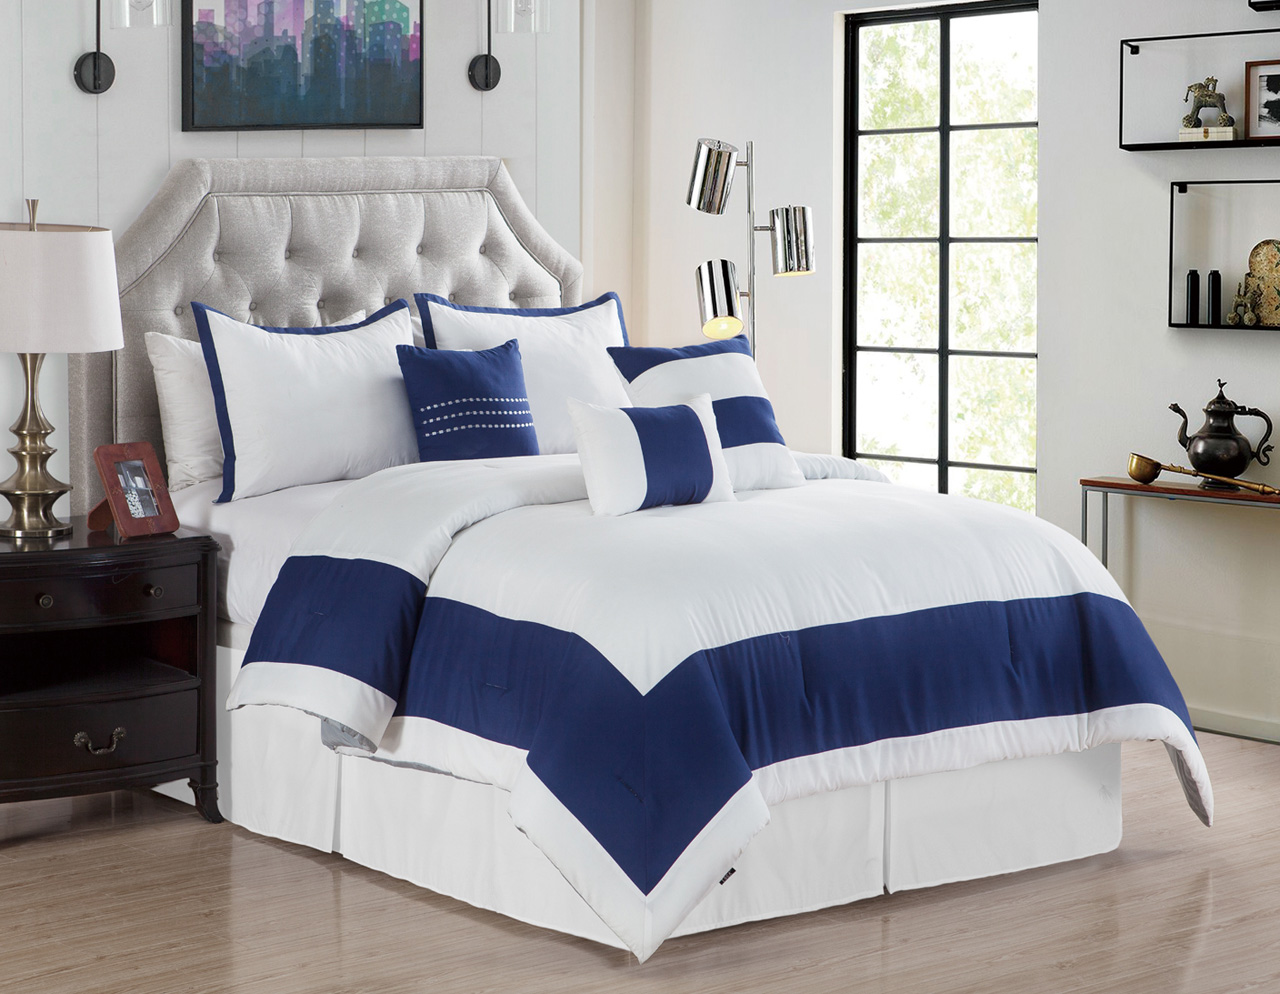 7 Piece Daudi White Navy Comforter Set